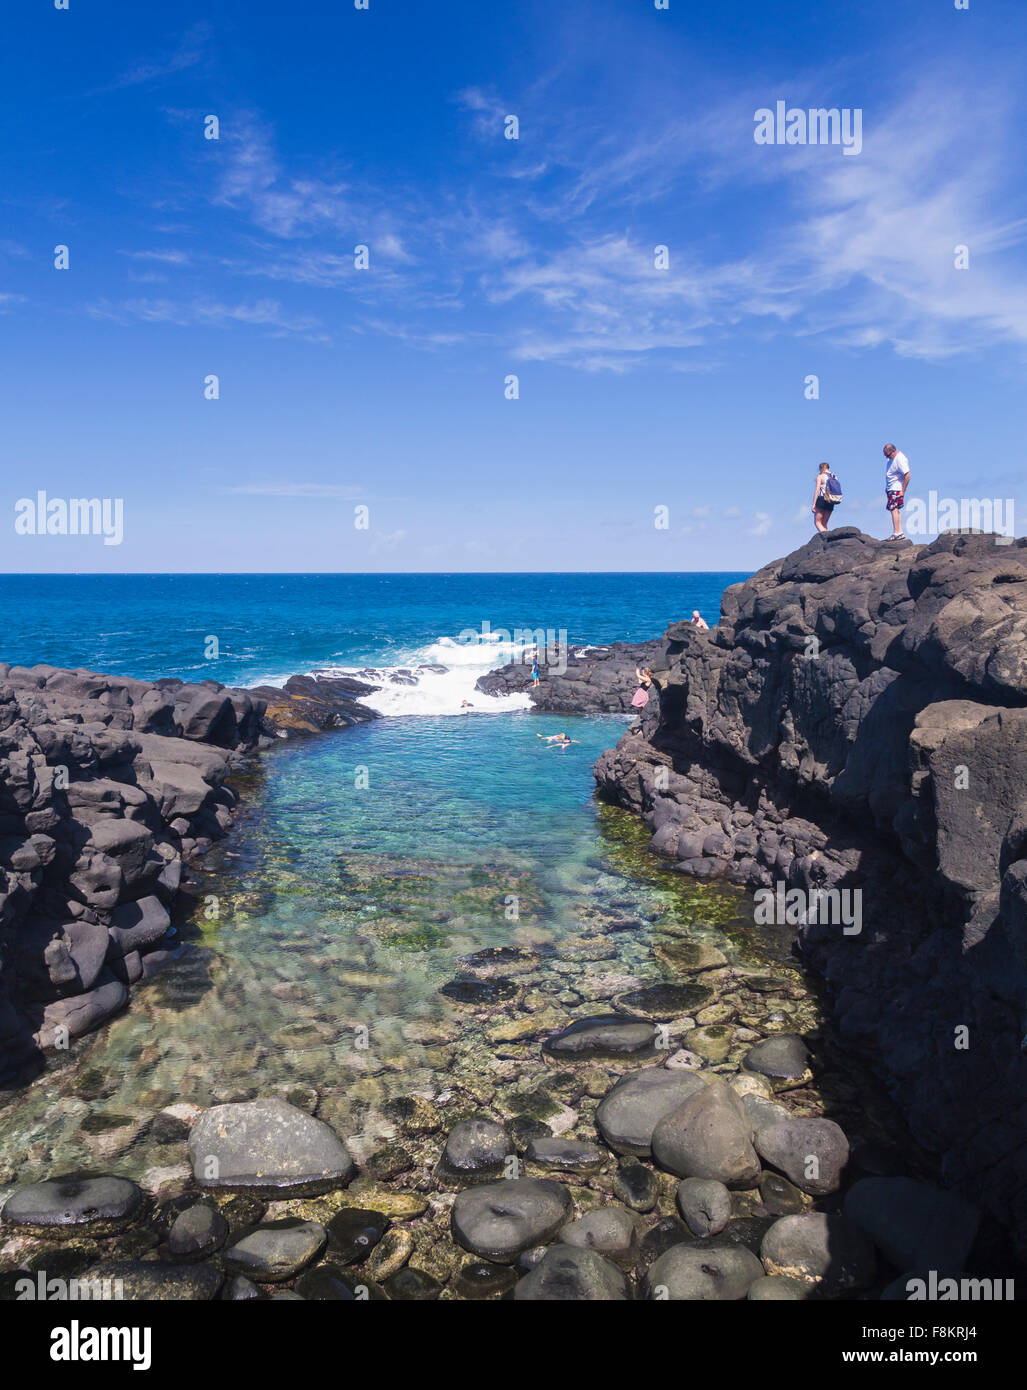 Tourists overlook snorkeling swimmers in the sea at Queens Bath tide pool near Princeville, Kauai - Stock Image